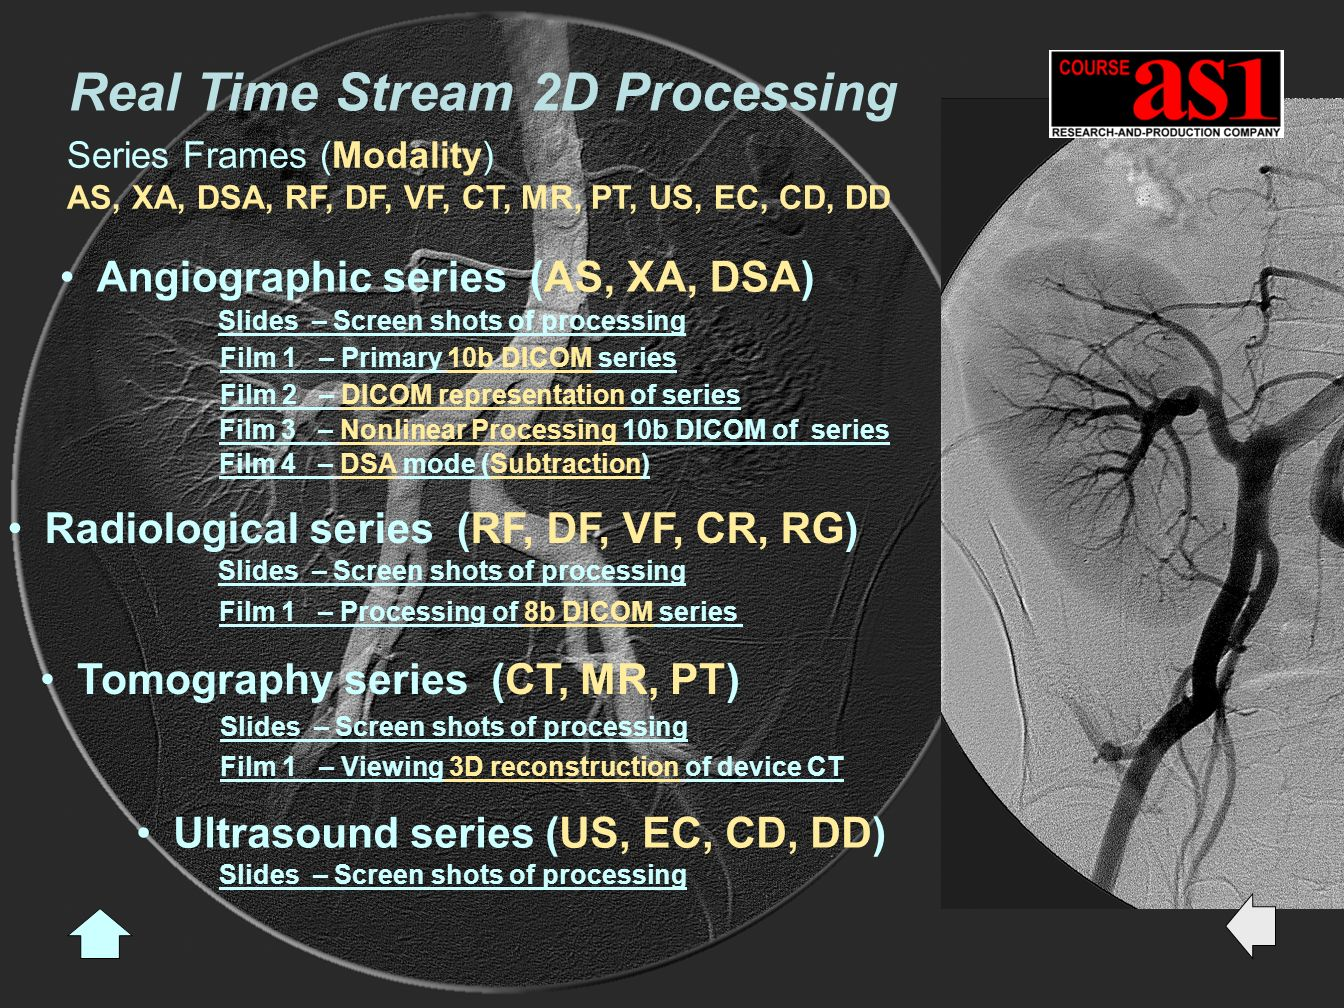 Radiological series (RF, DF, VF, CR, RG) Slides – Screen shots of processing Film 1 – Processing of 8b DICOM series Angiographic series (AS, XA, DSA) Tomography series (CT, MR, PT) Ultrasound series (US, EC, CD, DD) Slides – Screen shots of processing Film 1 – Primary 10b DICOM series Film 2 – DICOM representation of series Film 3 – Nonlinear Processing 10b DICOM of series Film 4 – DSA mode (Subtraction) Film 1 – Viewing 3D reconstruction of device CT Slides – Screen shots of processing Slides – Screen shots of processing Real Time Stream 2D Processing Series Frames (Modality) AS, XA, DSA, RF, DF, VF, CT, MR, PT, US, EC, CD, DD